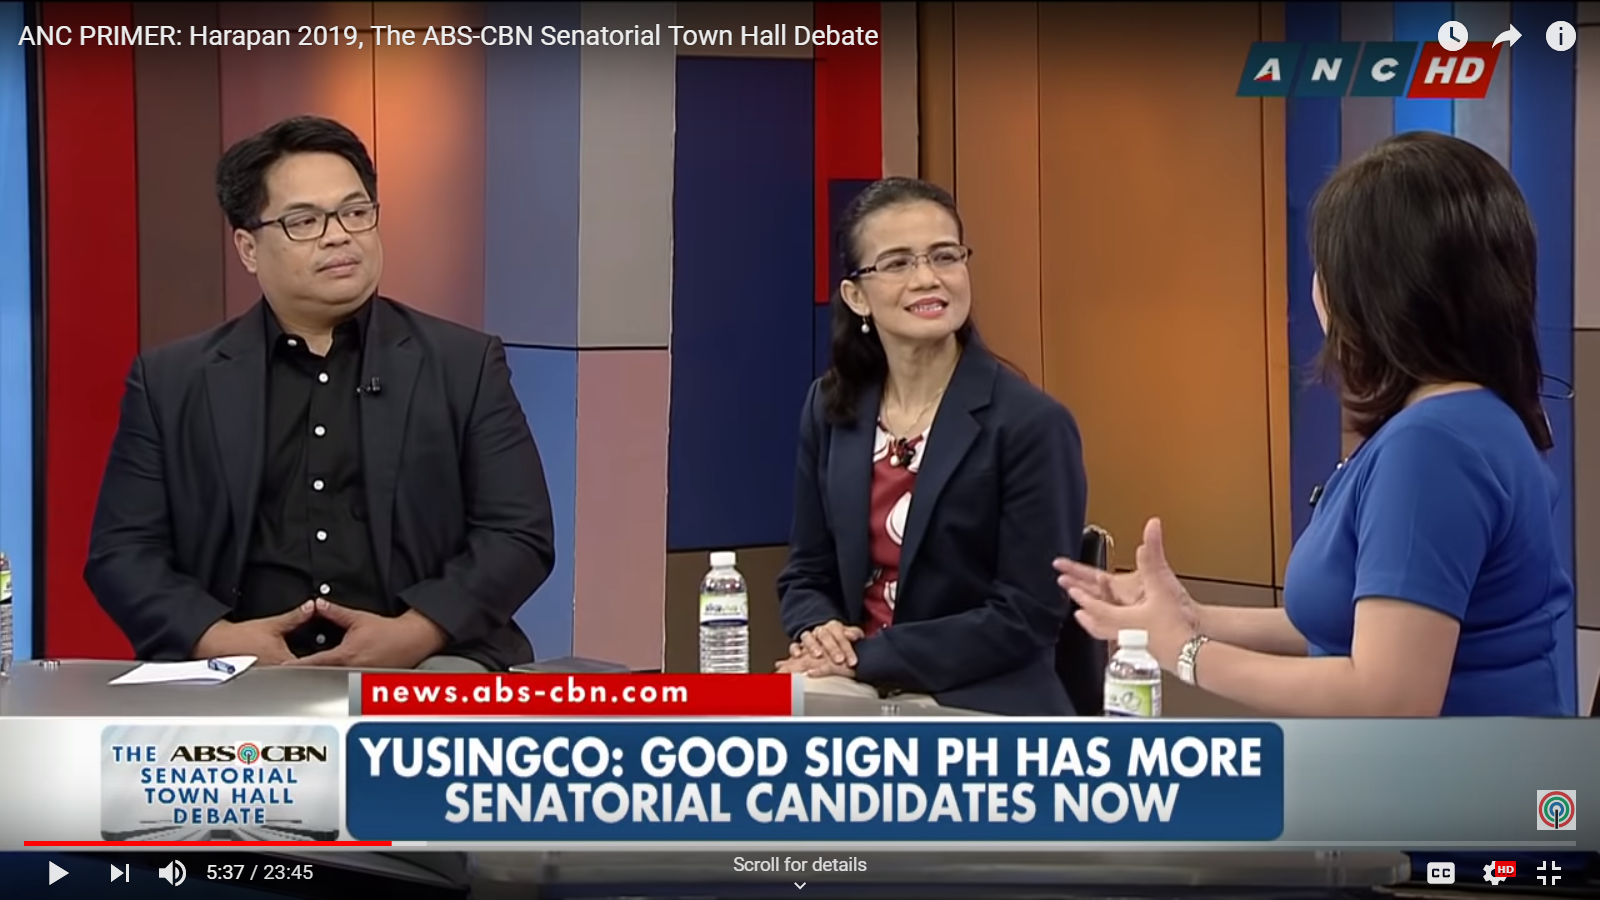 Pre-debate discussion of ANC's #Harapan2019